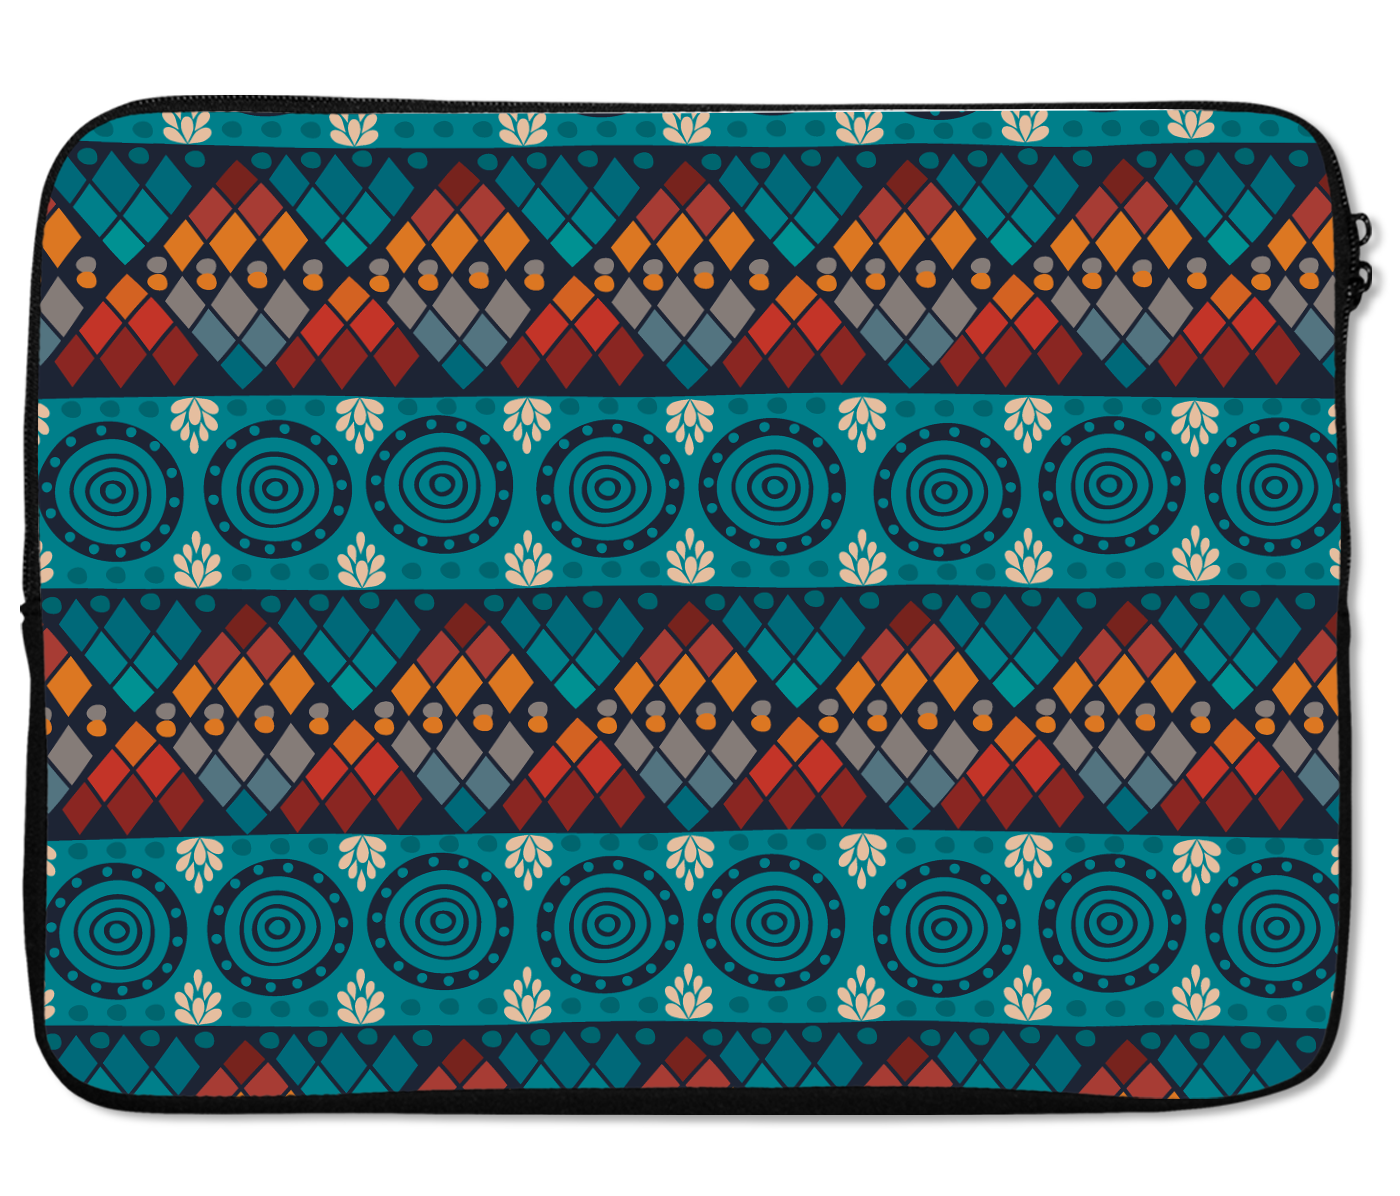 Laptops Tablet Sleeves Blue Ethnic Aftrican Pattern Premium Quality Neoprene Laptop Protection